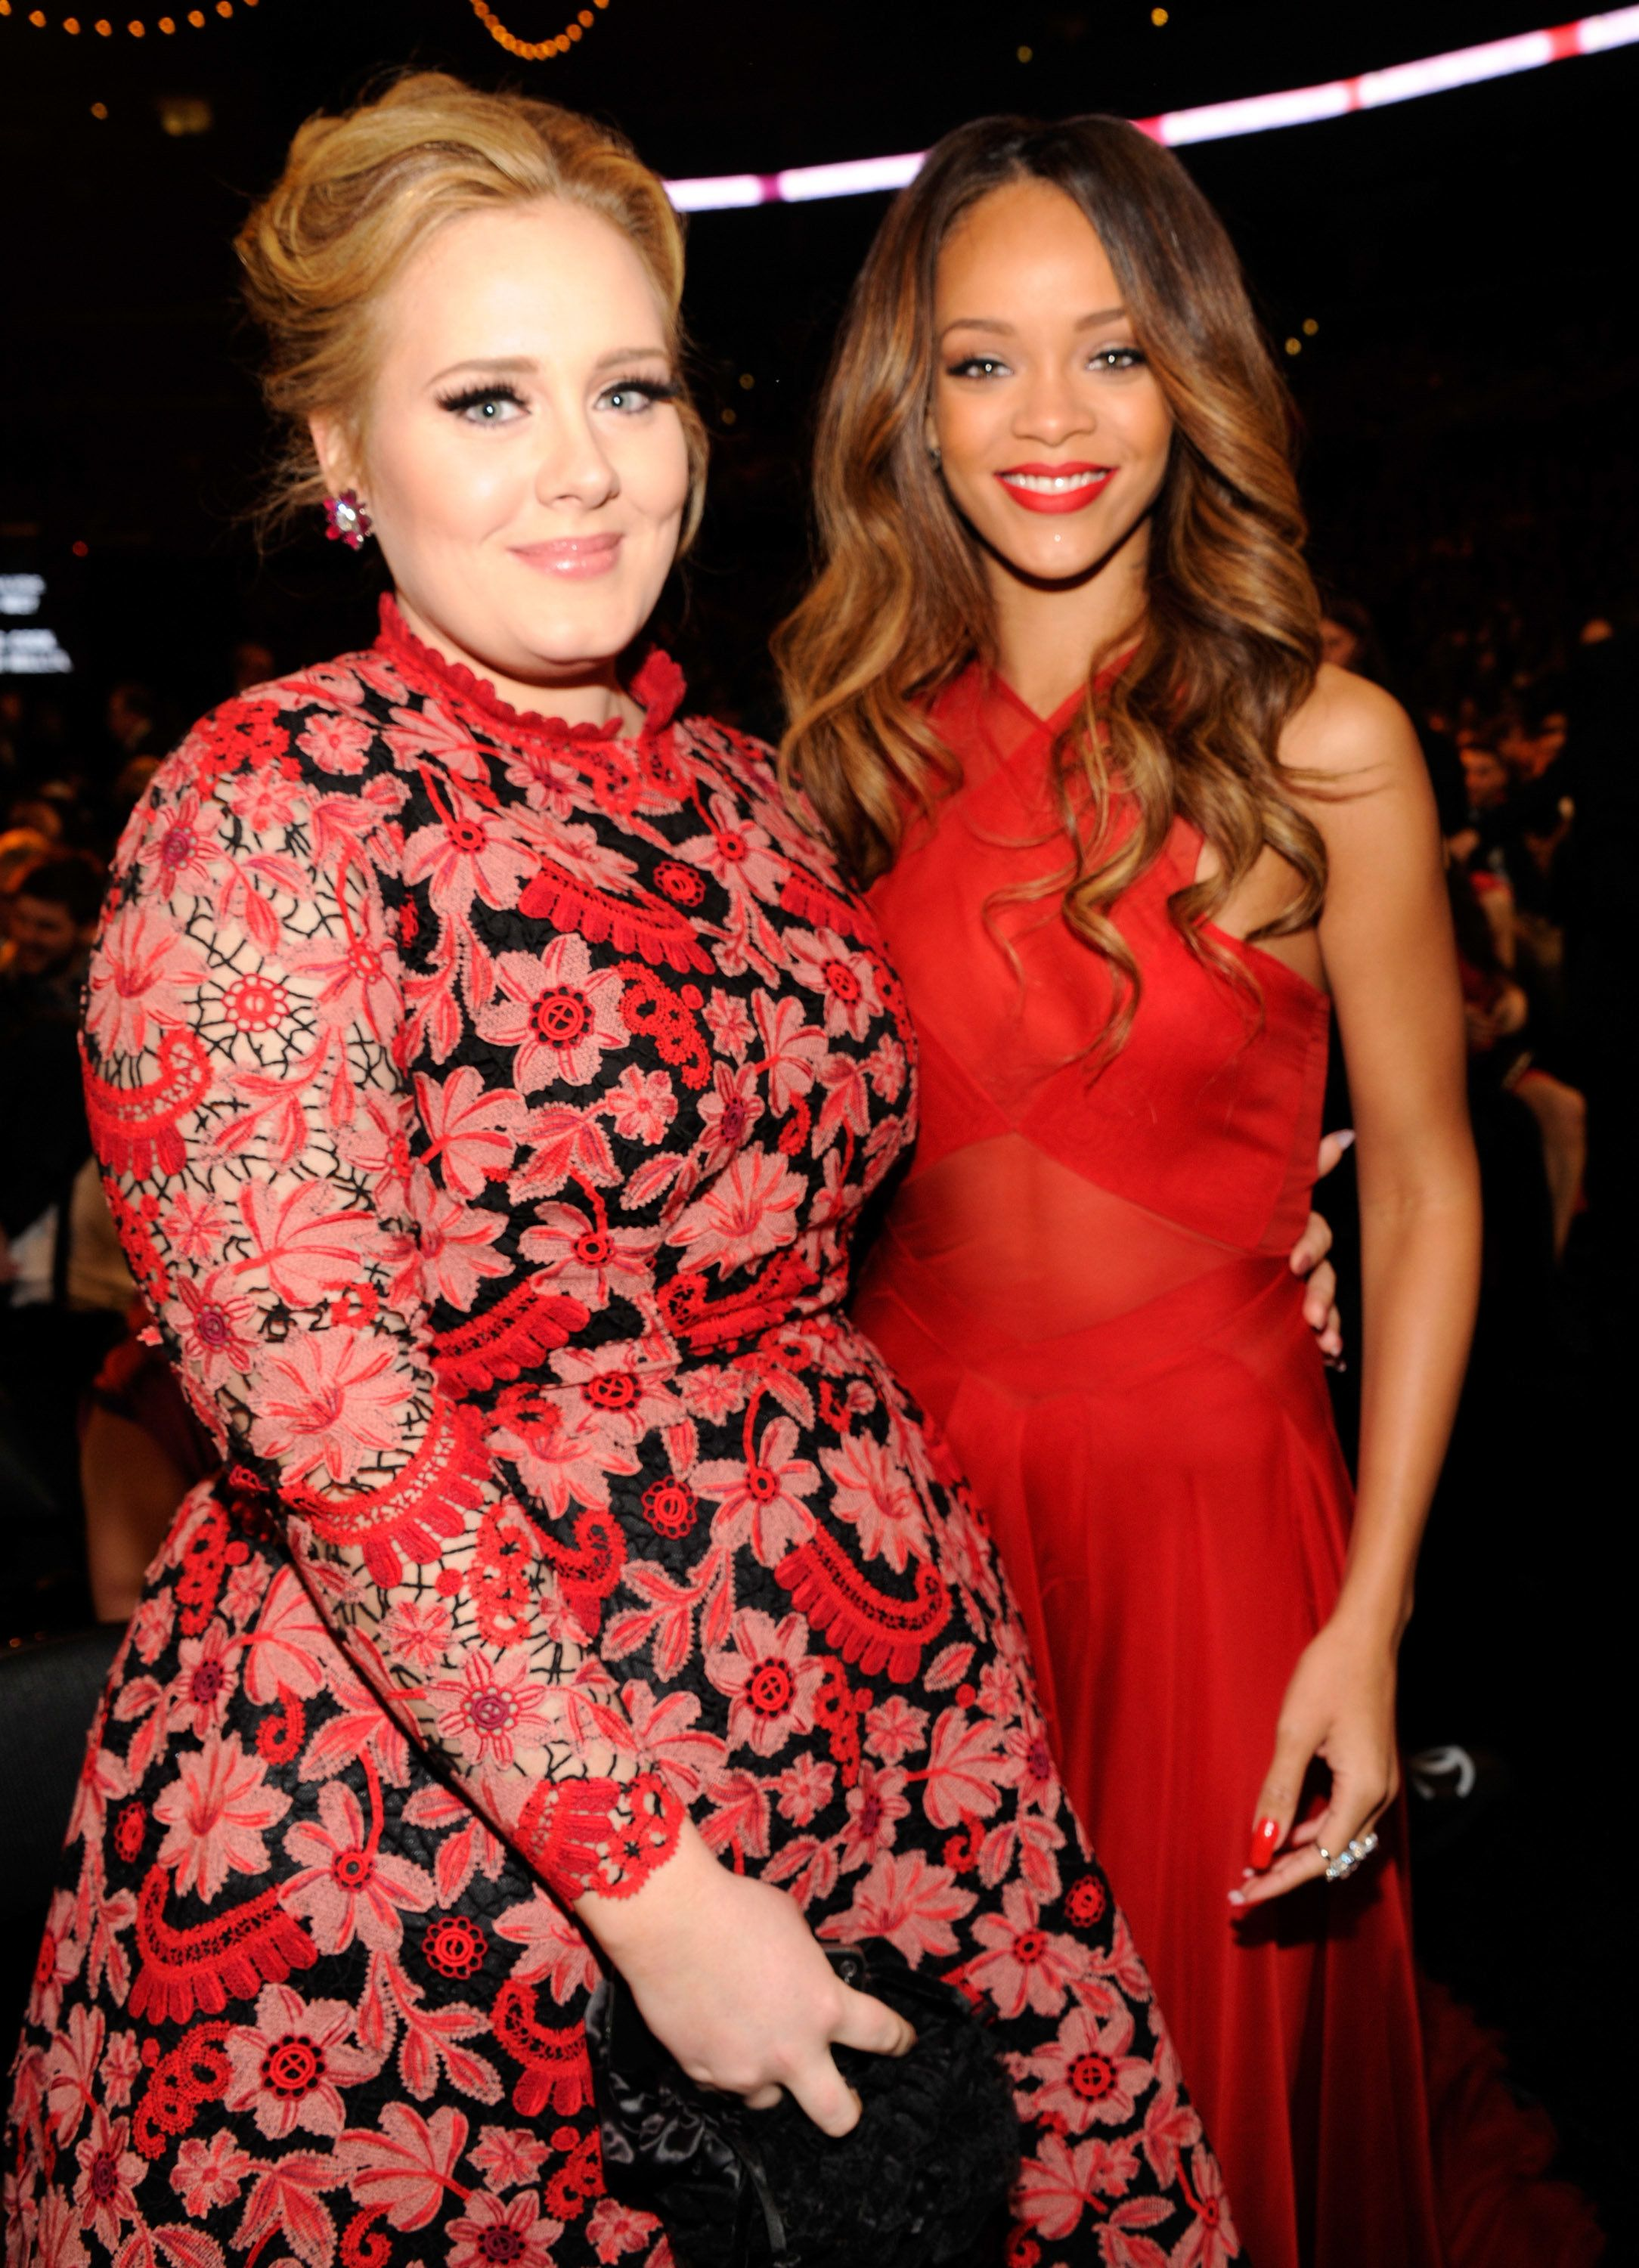 Adele Wrote About How Much She Loves Rihanna And Honestly Same Grammy Awards Adele Rihanna